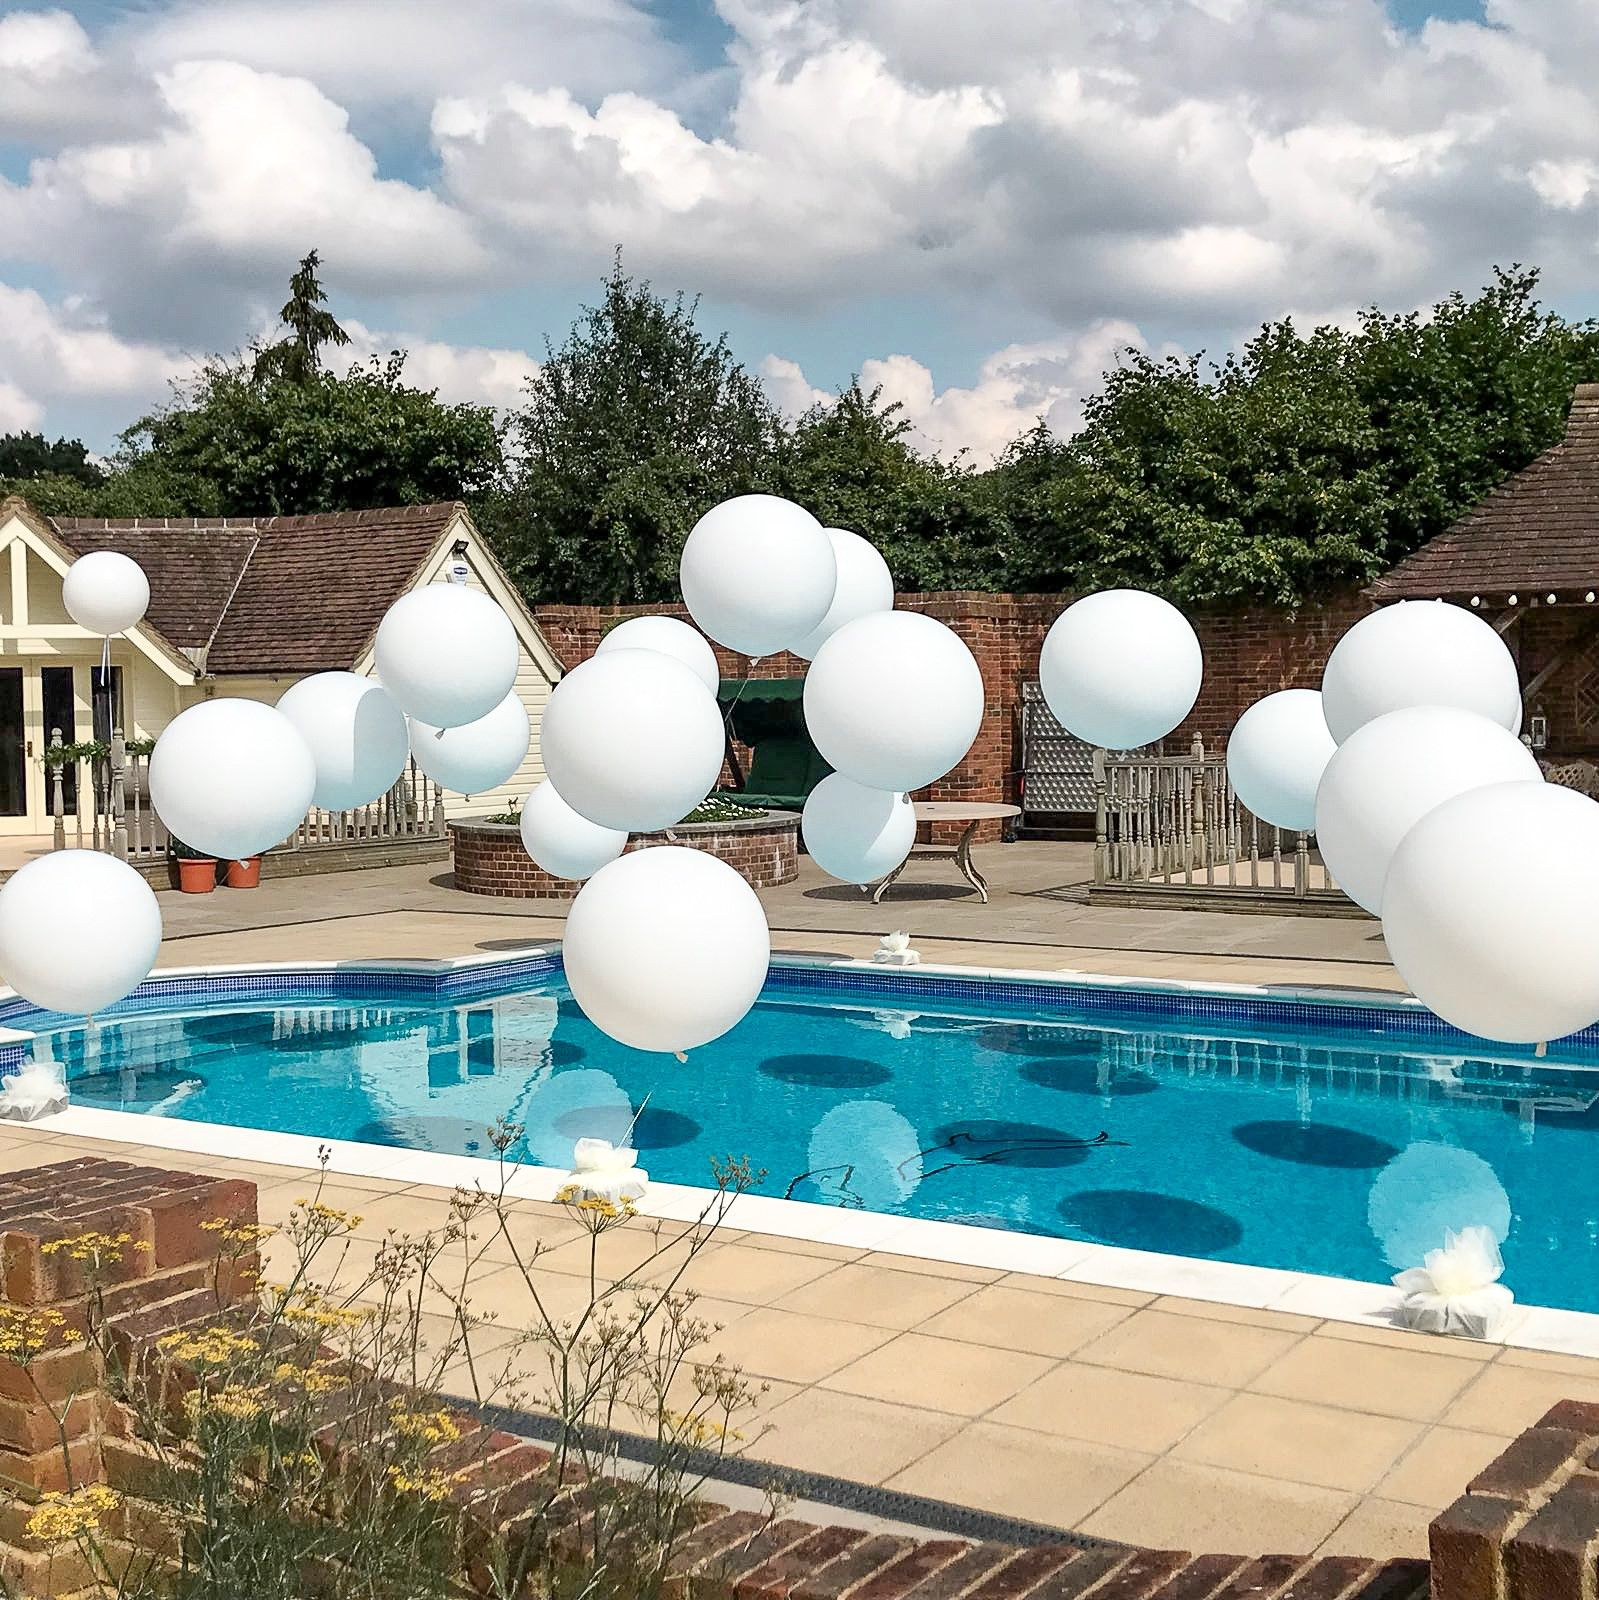 96 Fun Facts About Your Favorite Bridal Designers: Pool Balloons, Pool Party